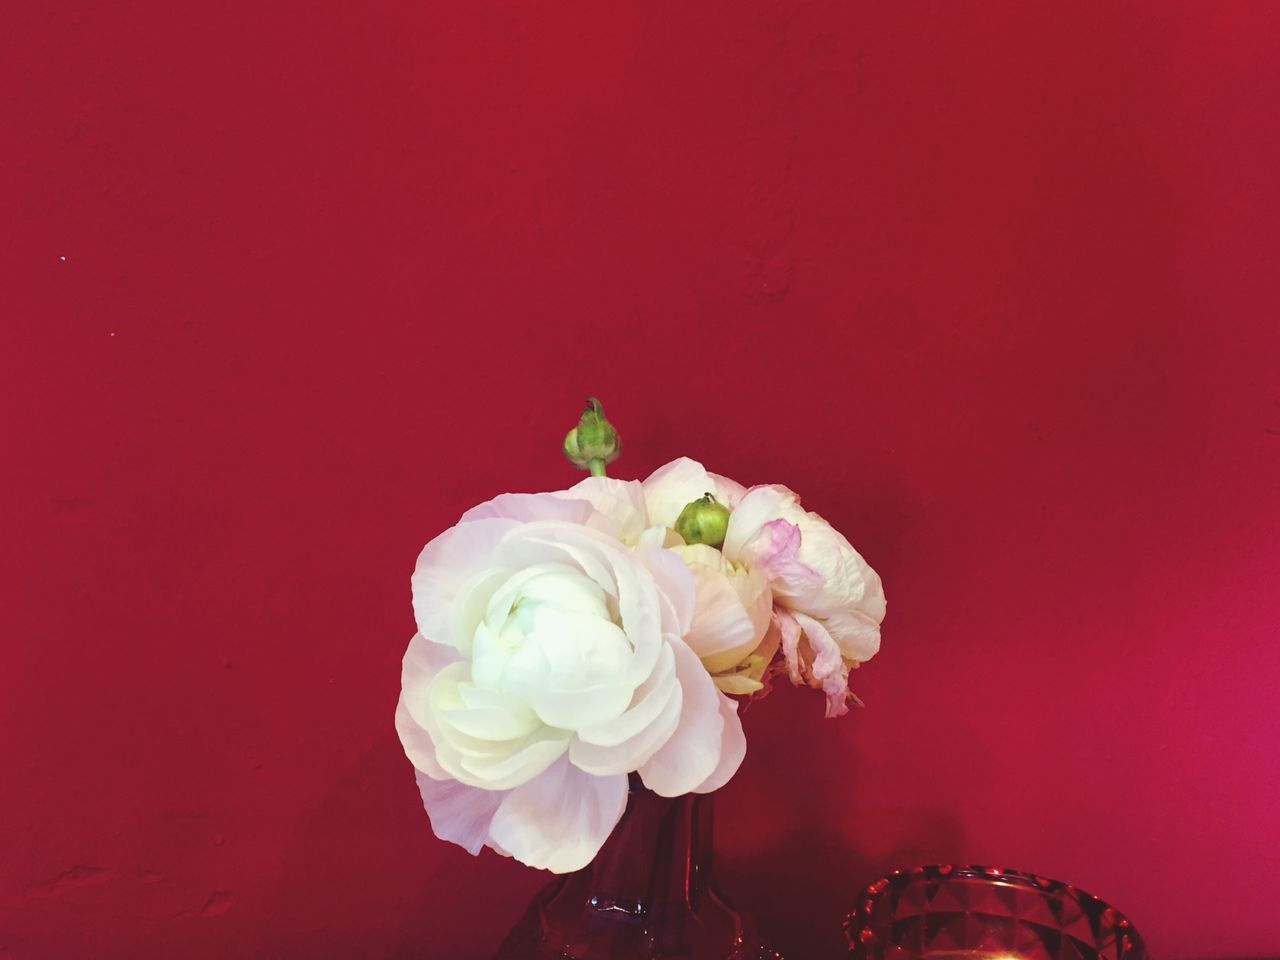 Flower Freshness Rose - Flower Studio Shot Fragility Petal Red Background Close-up Nature Beauty In Nature No People Flower Head Day Ranunculus Decor Decoration Vase Coffee Table